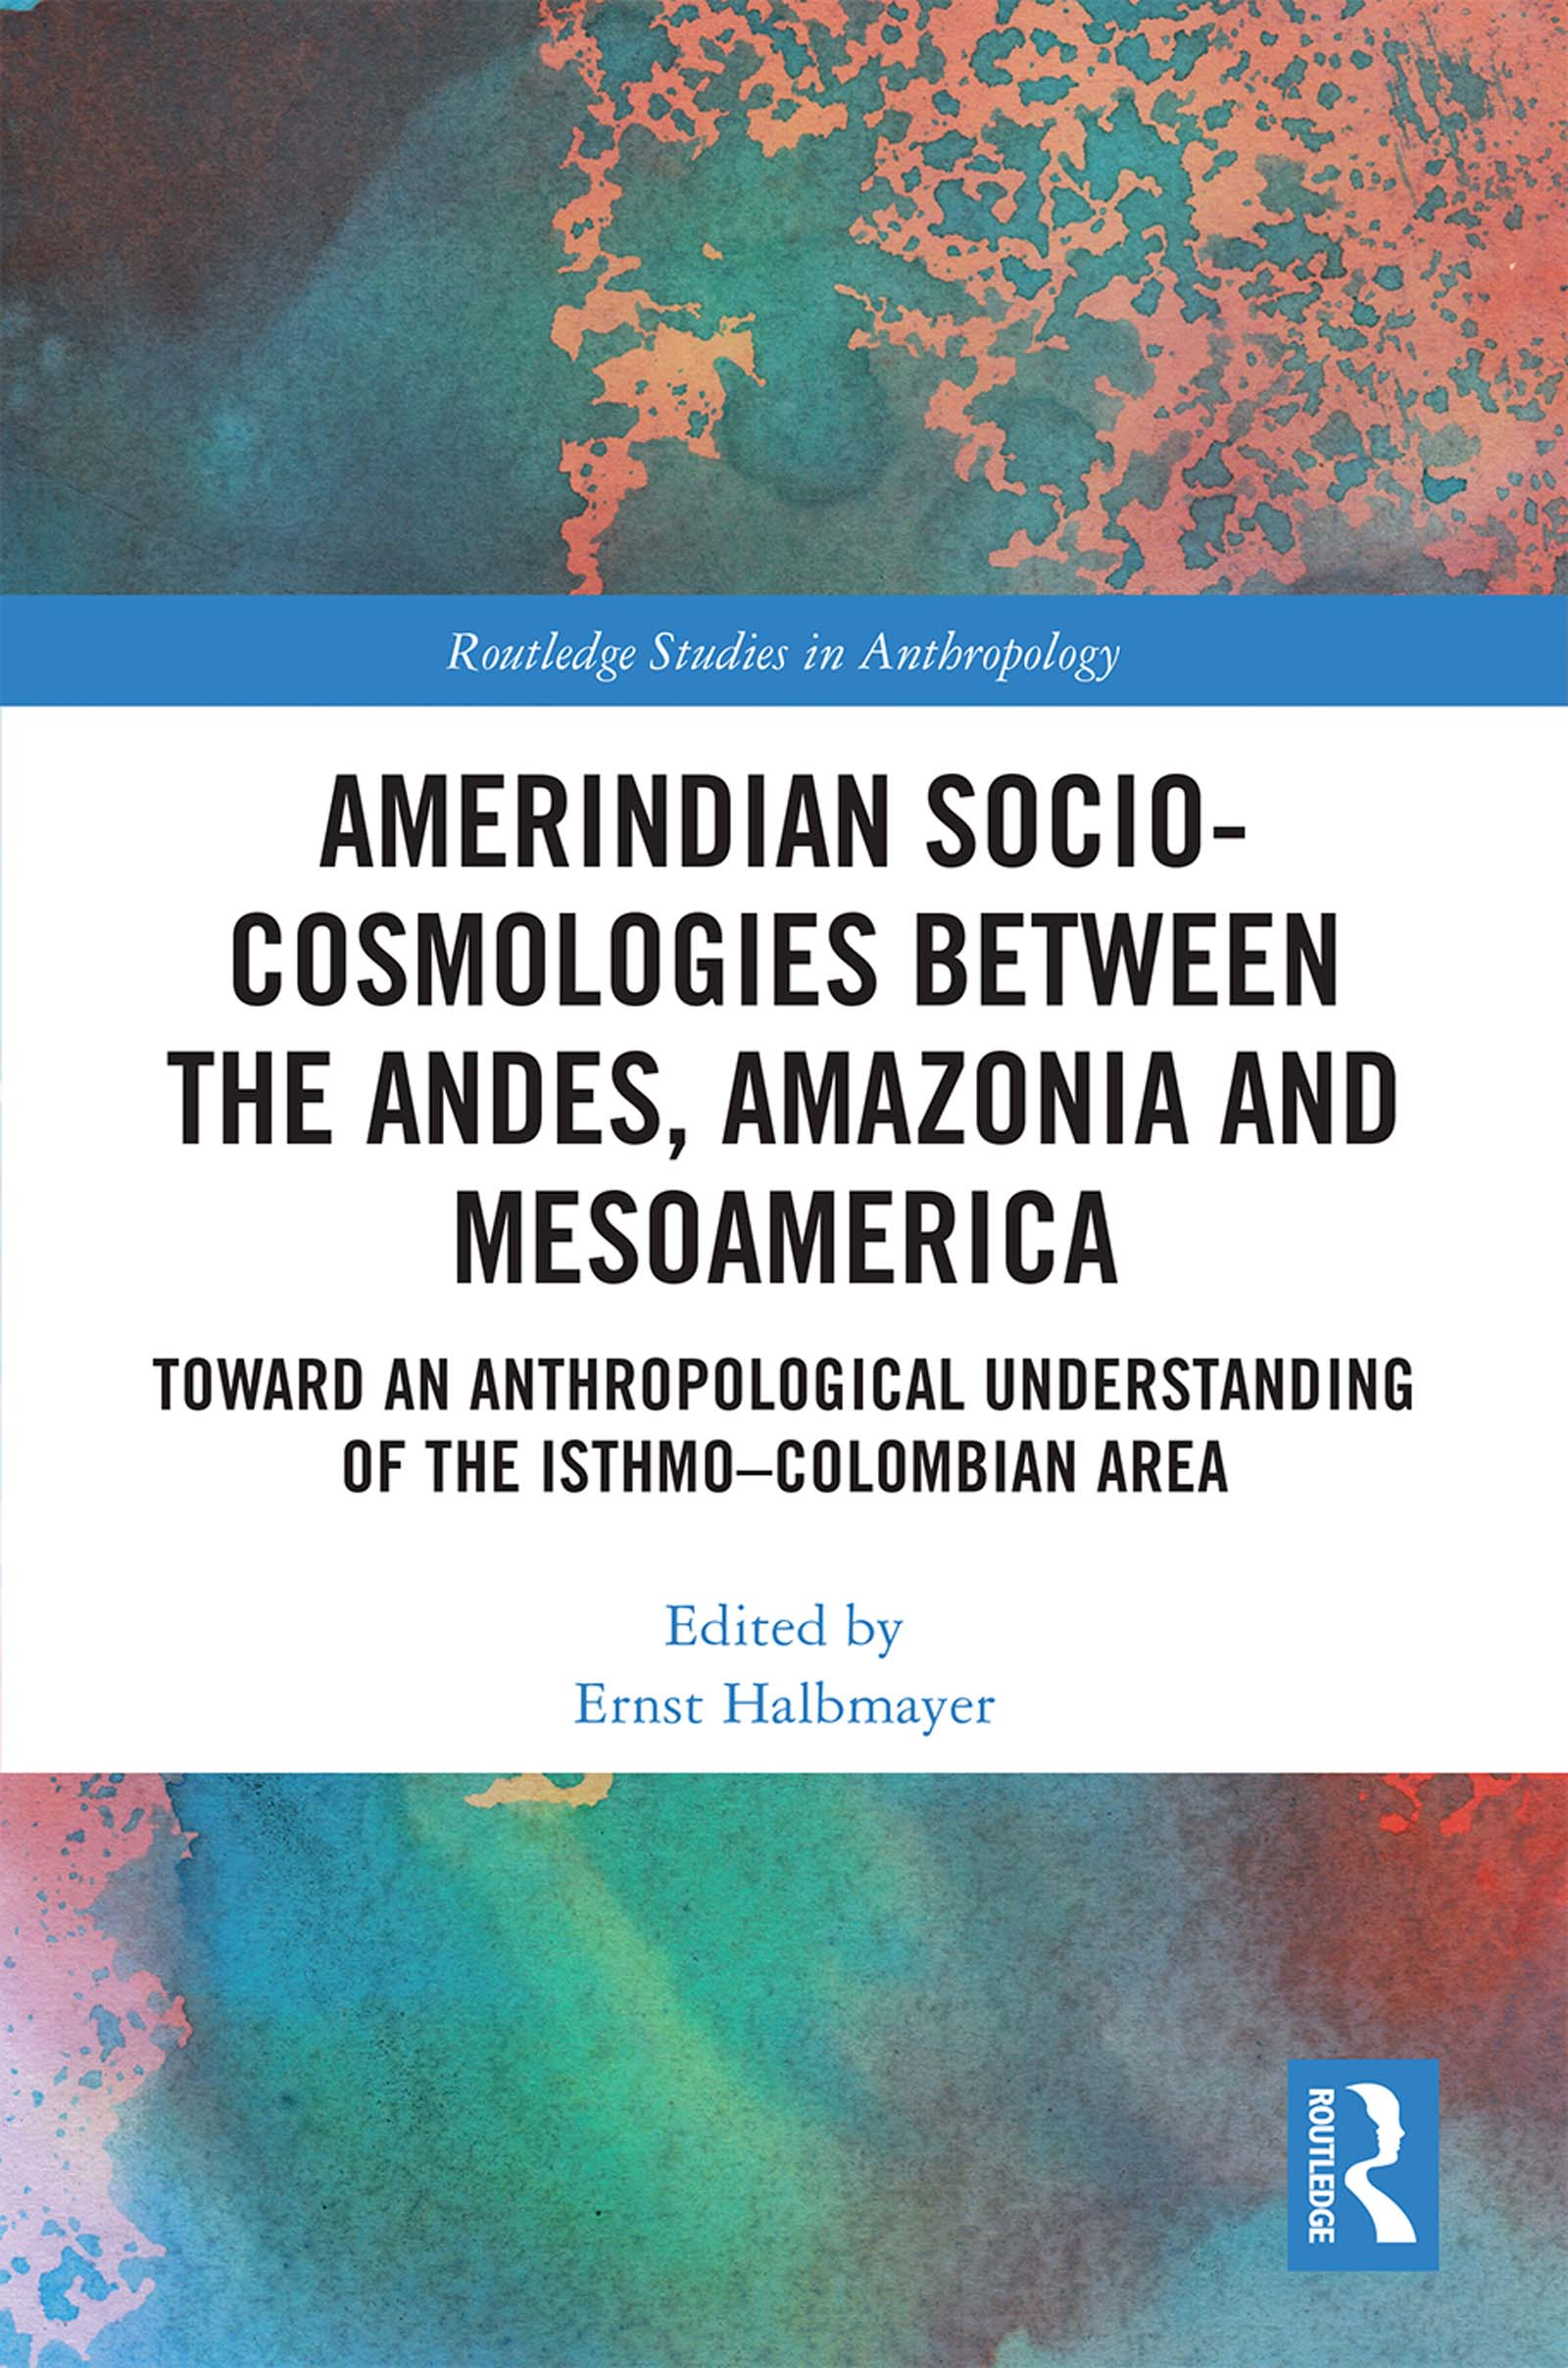 Amerindian Socio-Cosmologies between the Andes, Amazonia and Mesoamerica: Toward an Anthropological Understanding of the Isthmo-Colombian Area book cover